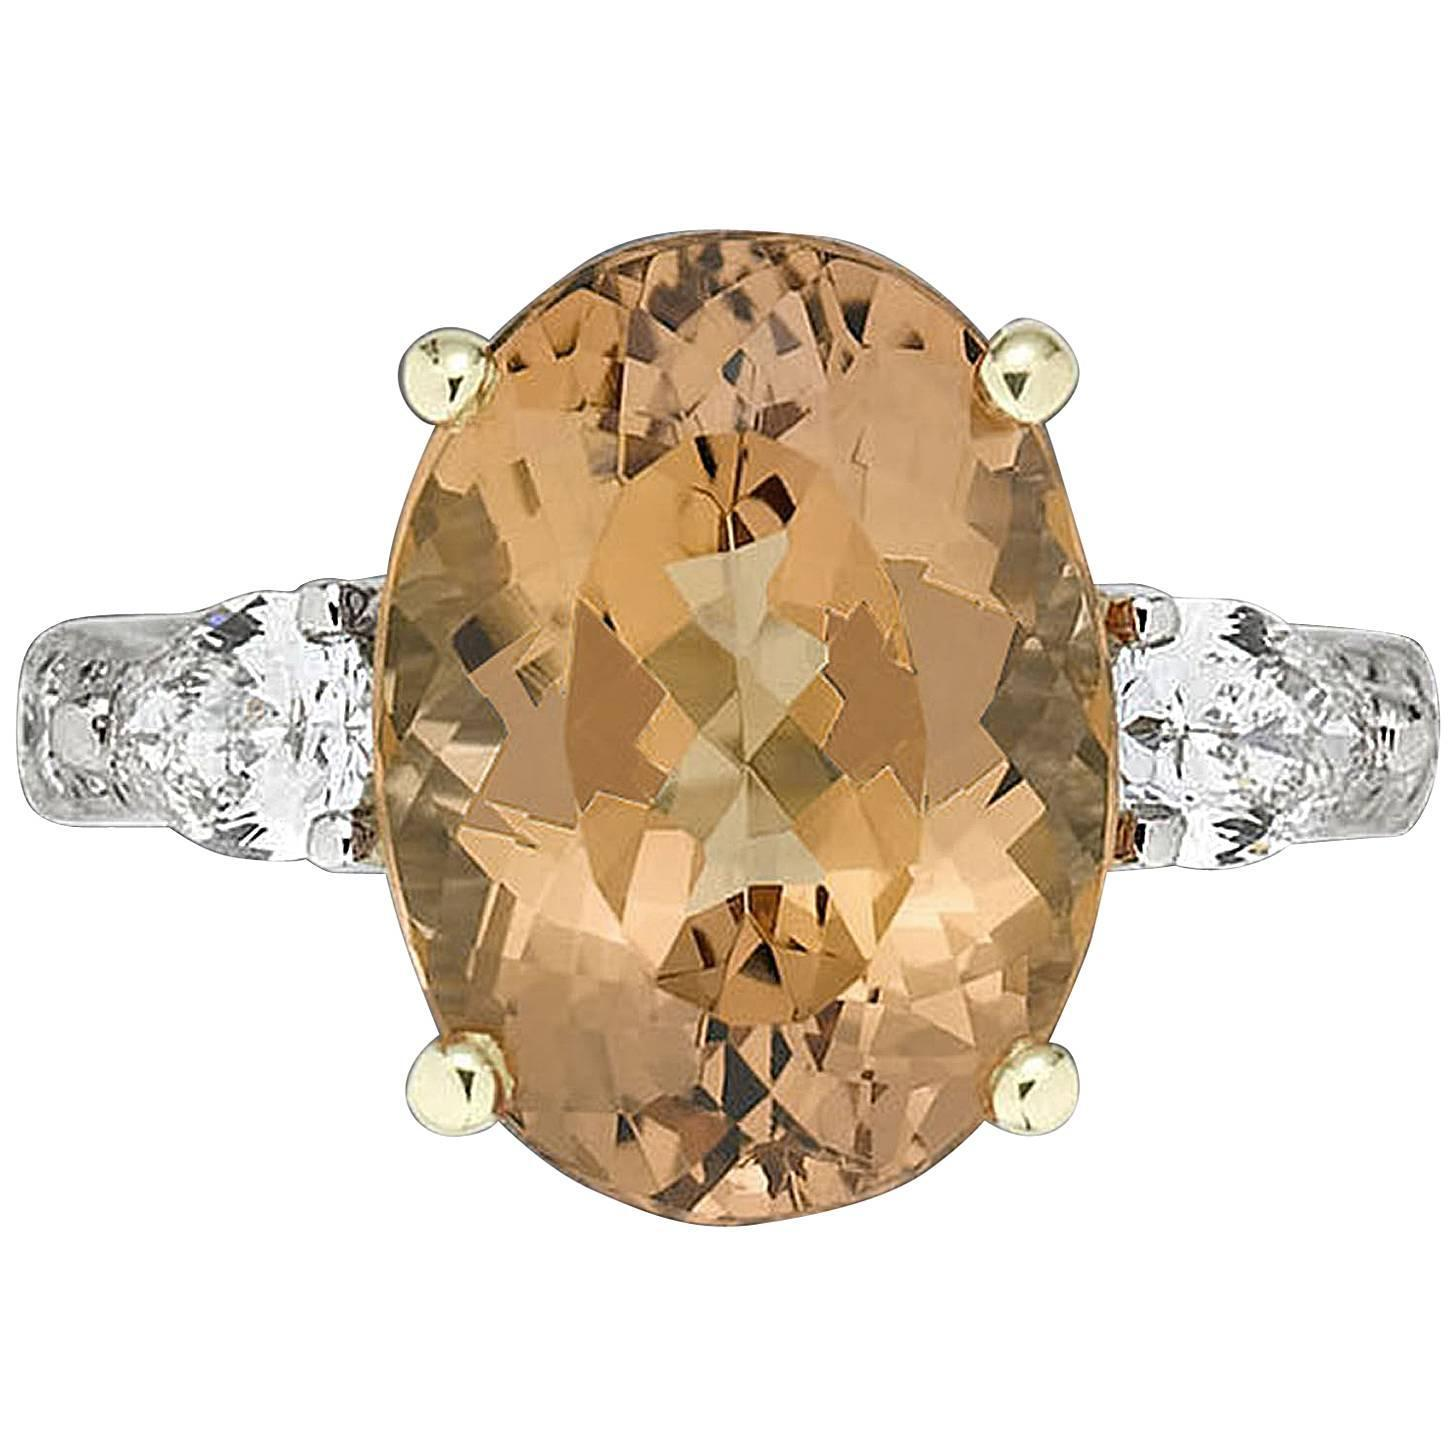 6 63 Carat Imperial Topaz Diamond Gold Platinum Ring at 1stdibs